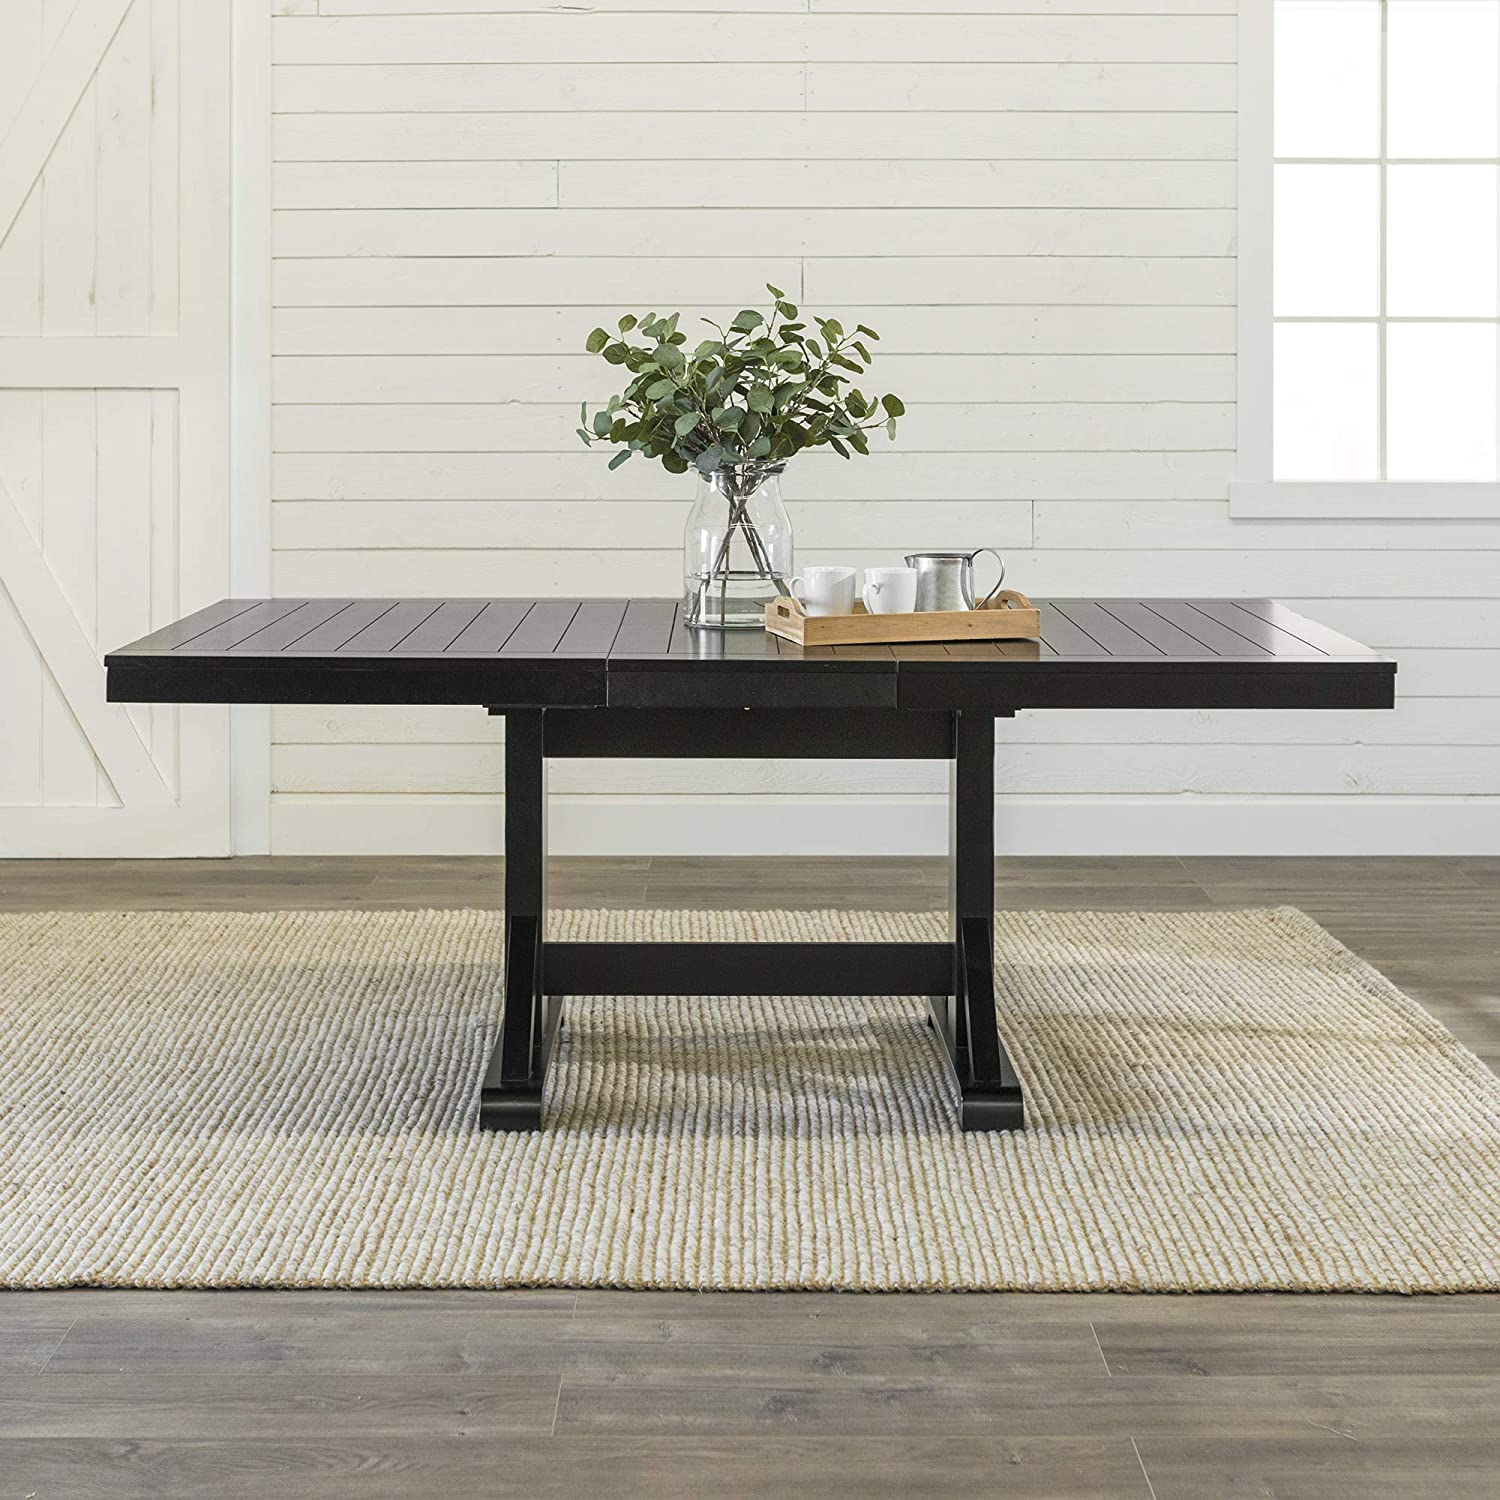 farmhouse-extension-dining-table-black-finish-slat-top-77-inch-tabletop-size-modern-rustic-furniture-inspiration